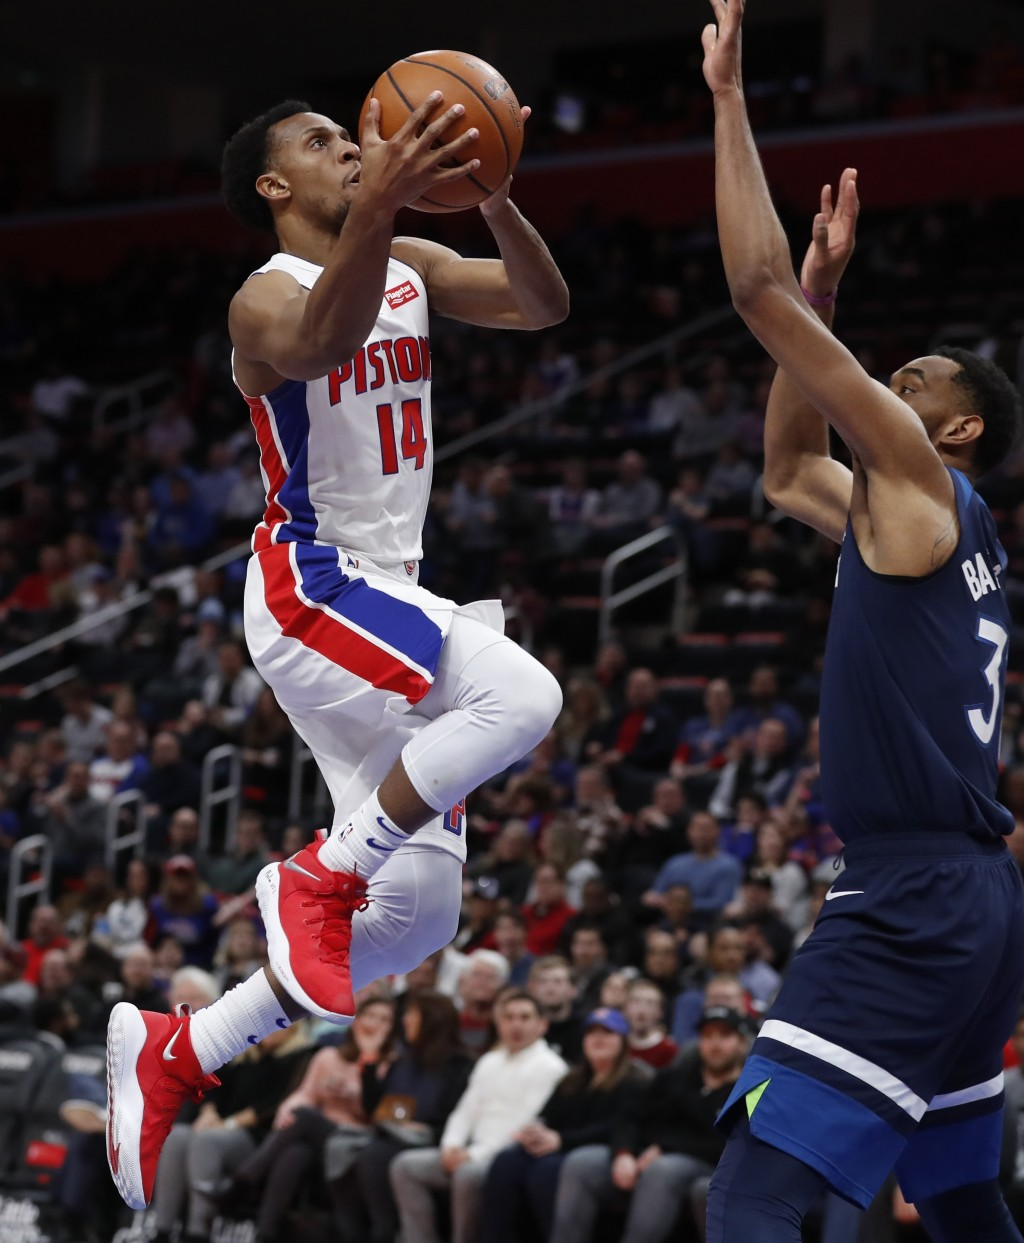 Detroit Pistons guard Ish Smith (14) shoots as Minnesota Timberwolves forward Keita Bates-Diop (31) defends during the first half of an NBA basketball